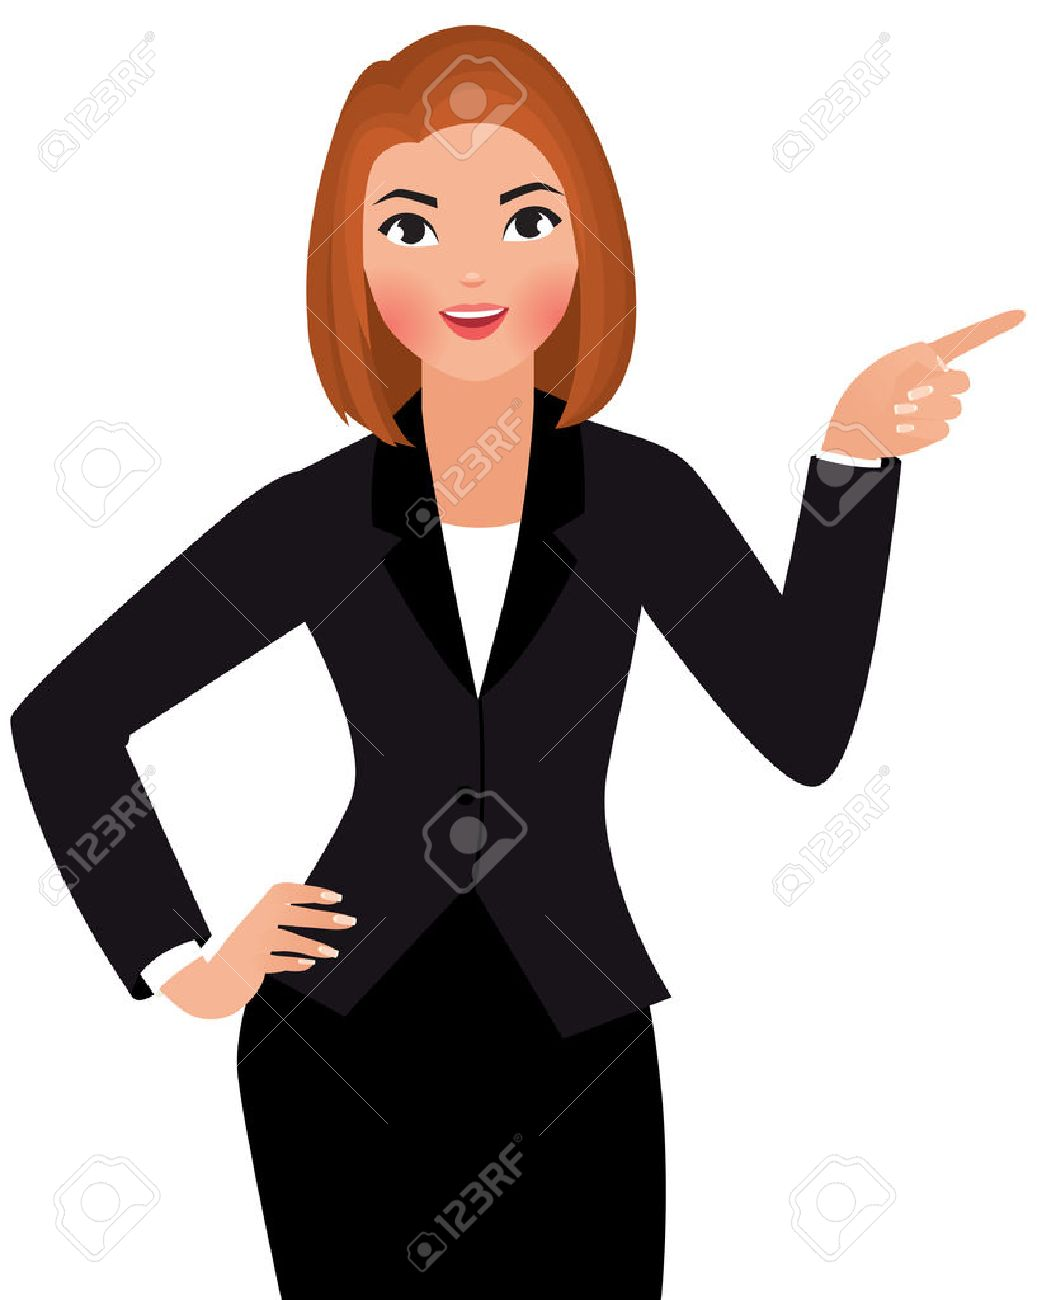 Stock Vector cartoon illustration of a young business woman isolated on a white background points hand at something - 35804664